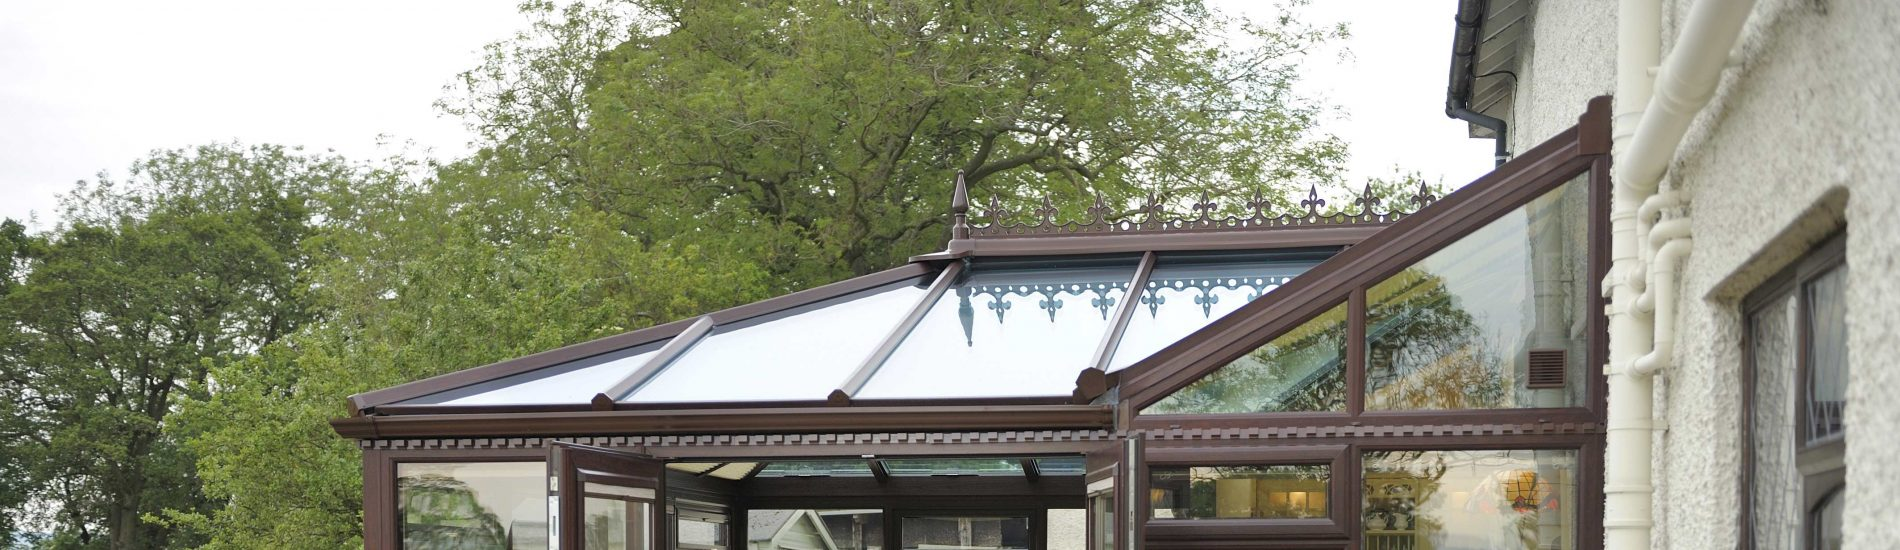 Conservatory Refurbishment Costs Manchester